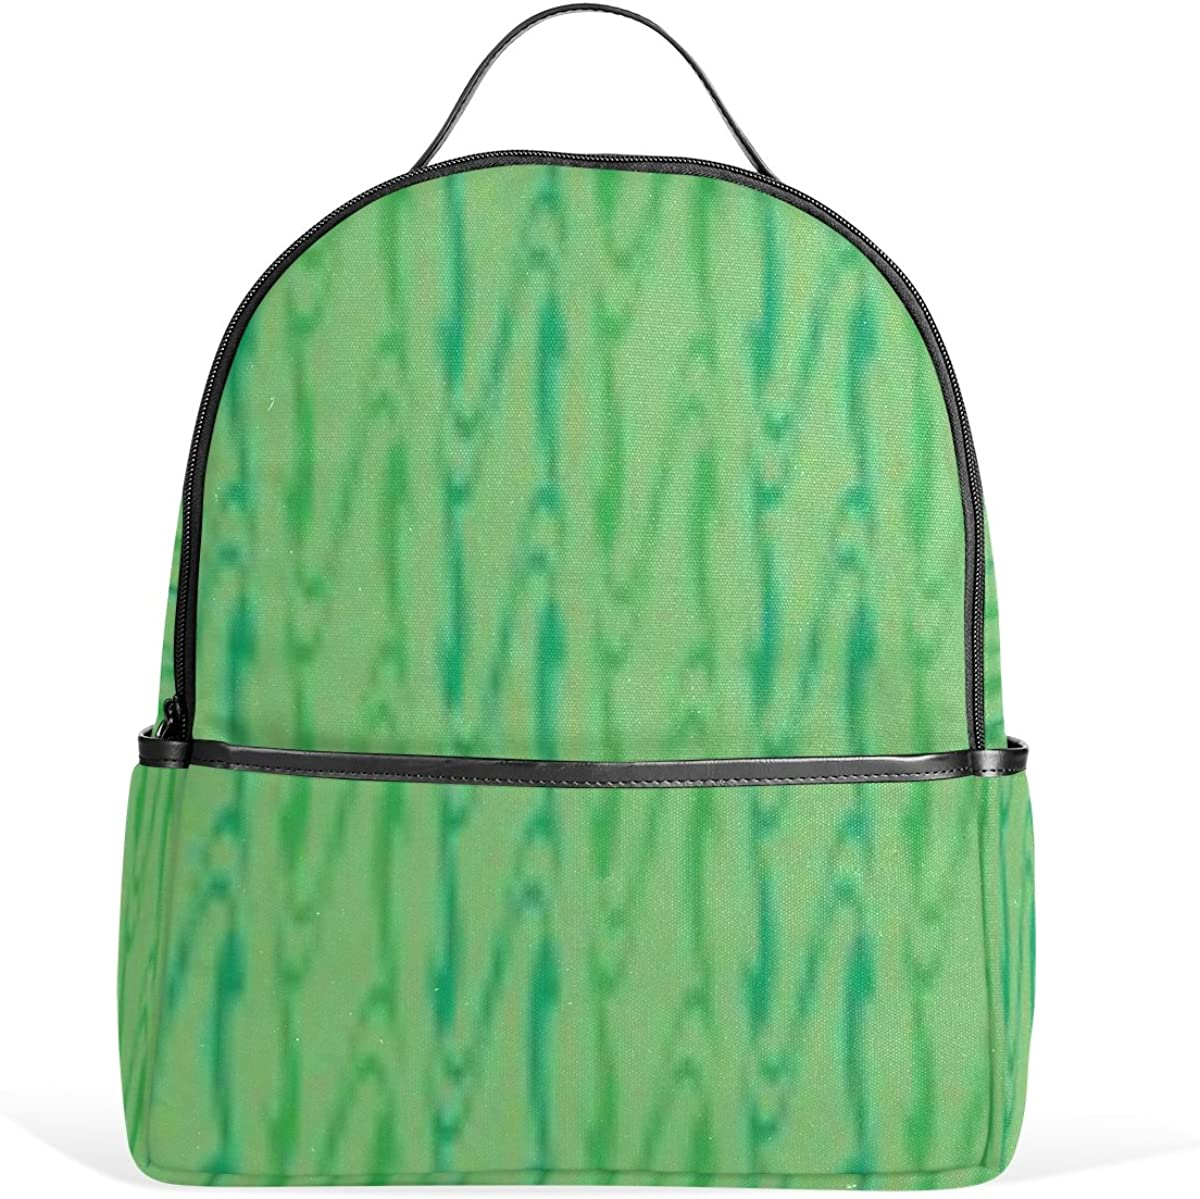 Mr.Weng Green Spiral Printed Canvas Backpack For Girl and Children